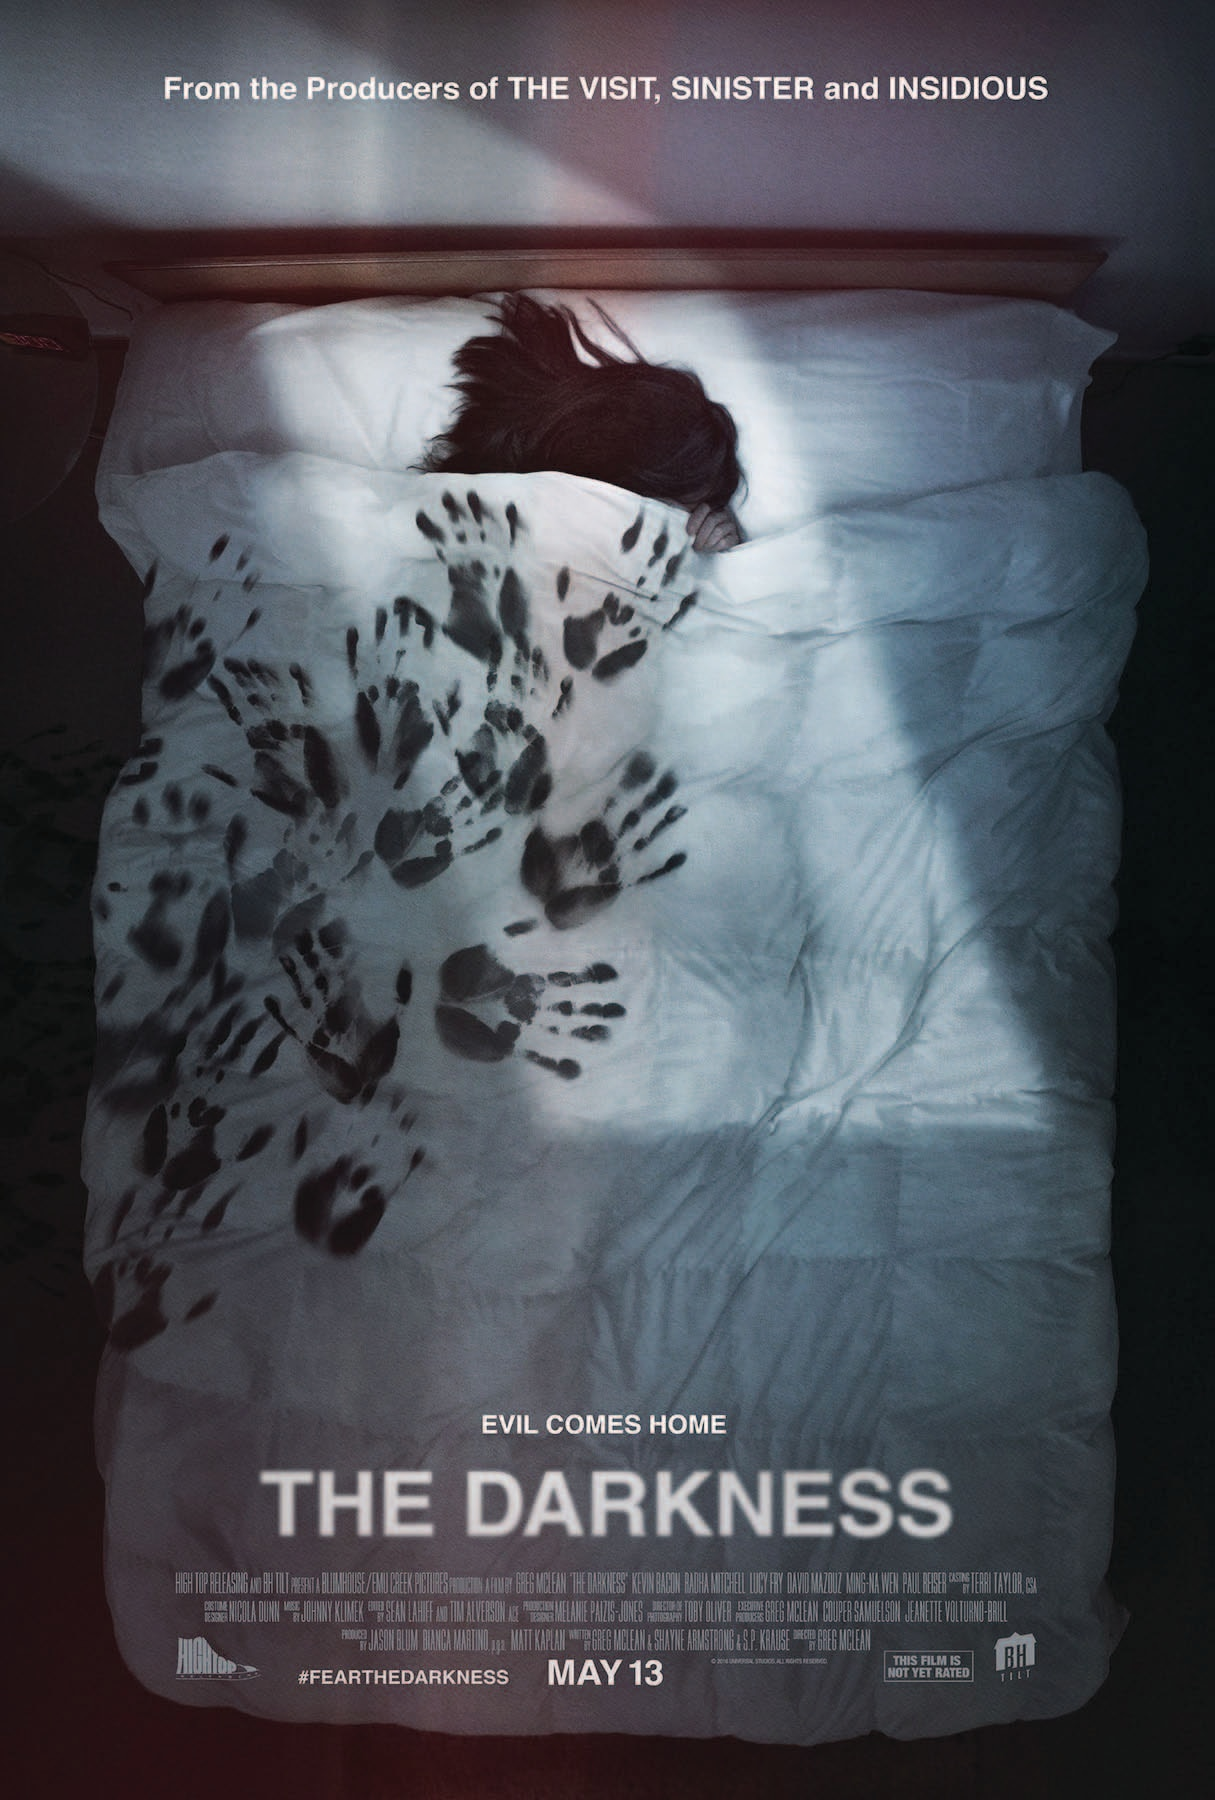 TheDarkness Poster - You Can Count on This TV Spot for The Darkness